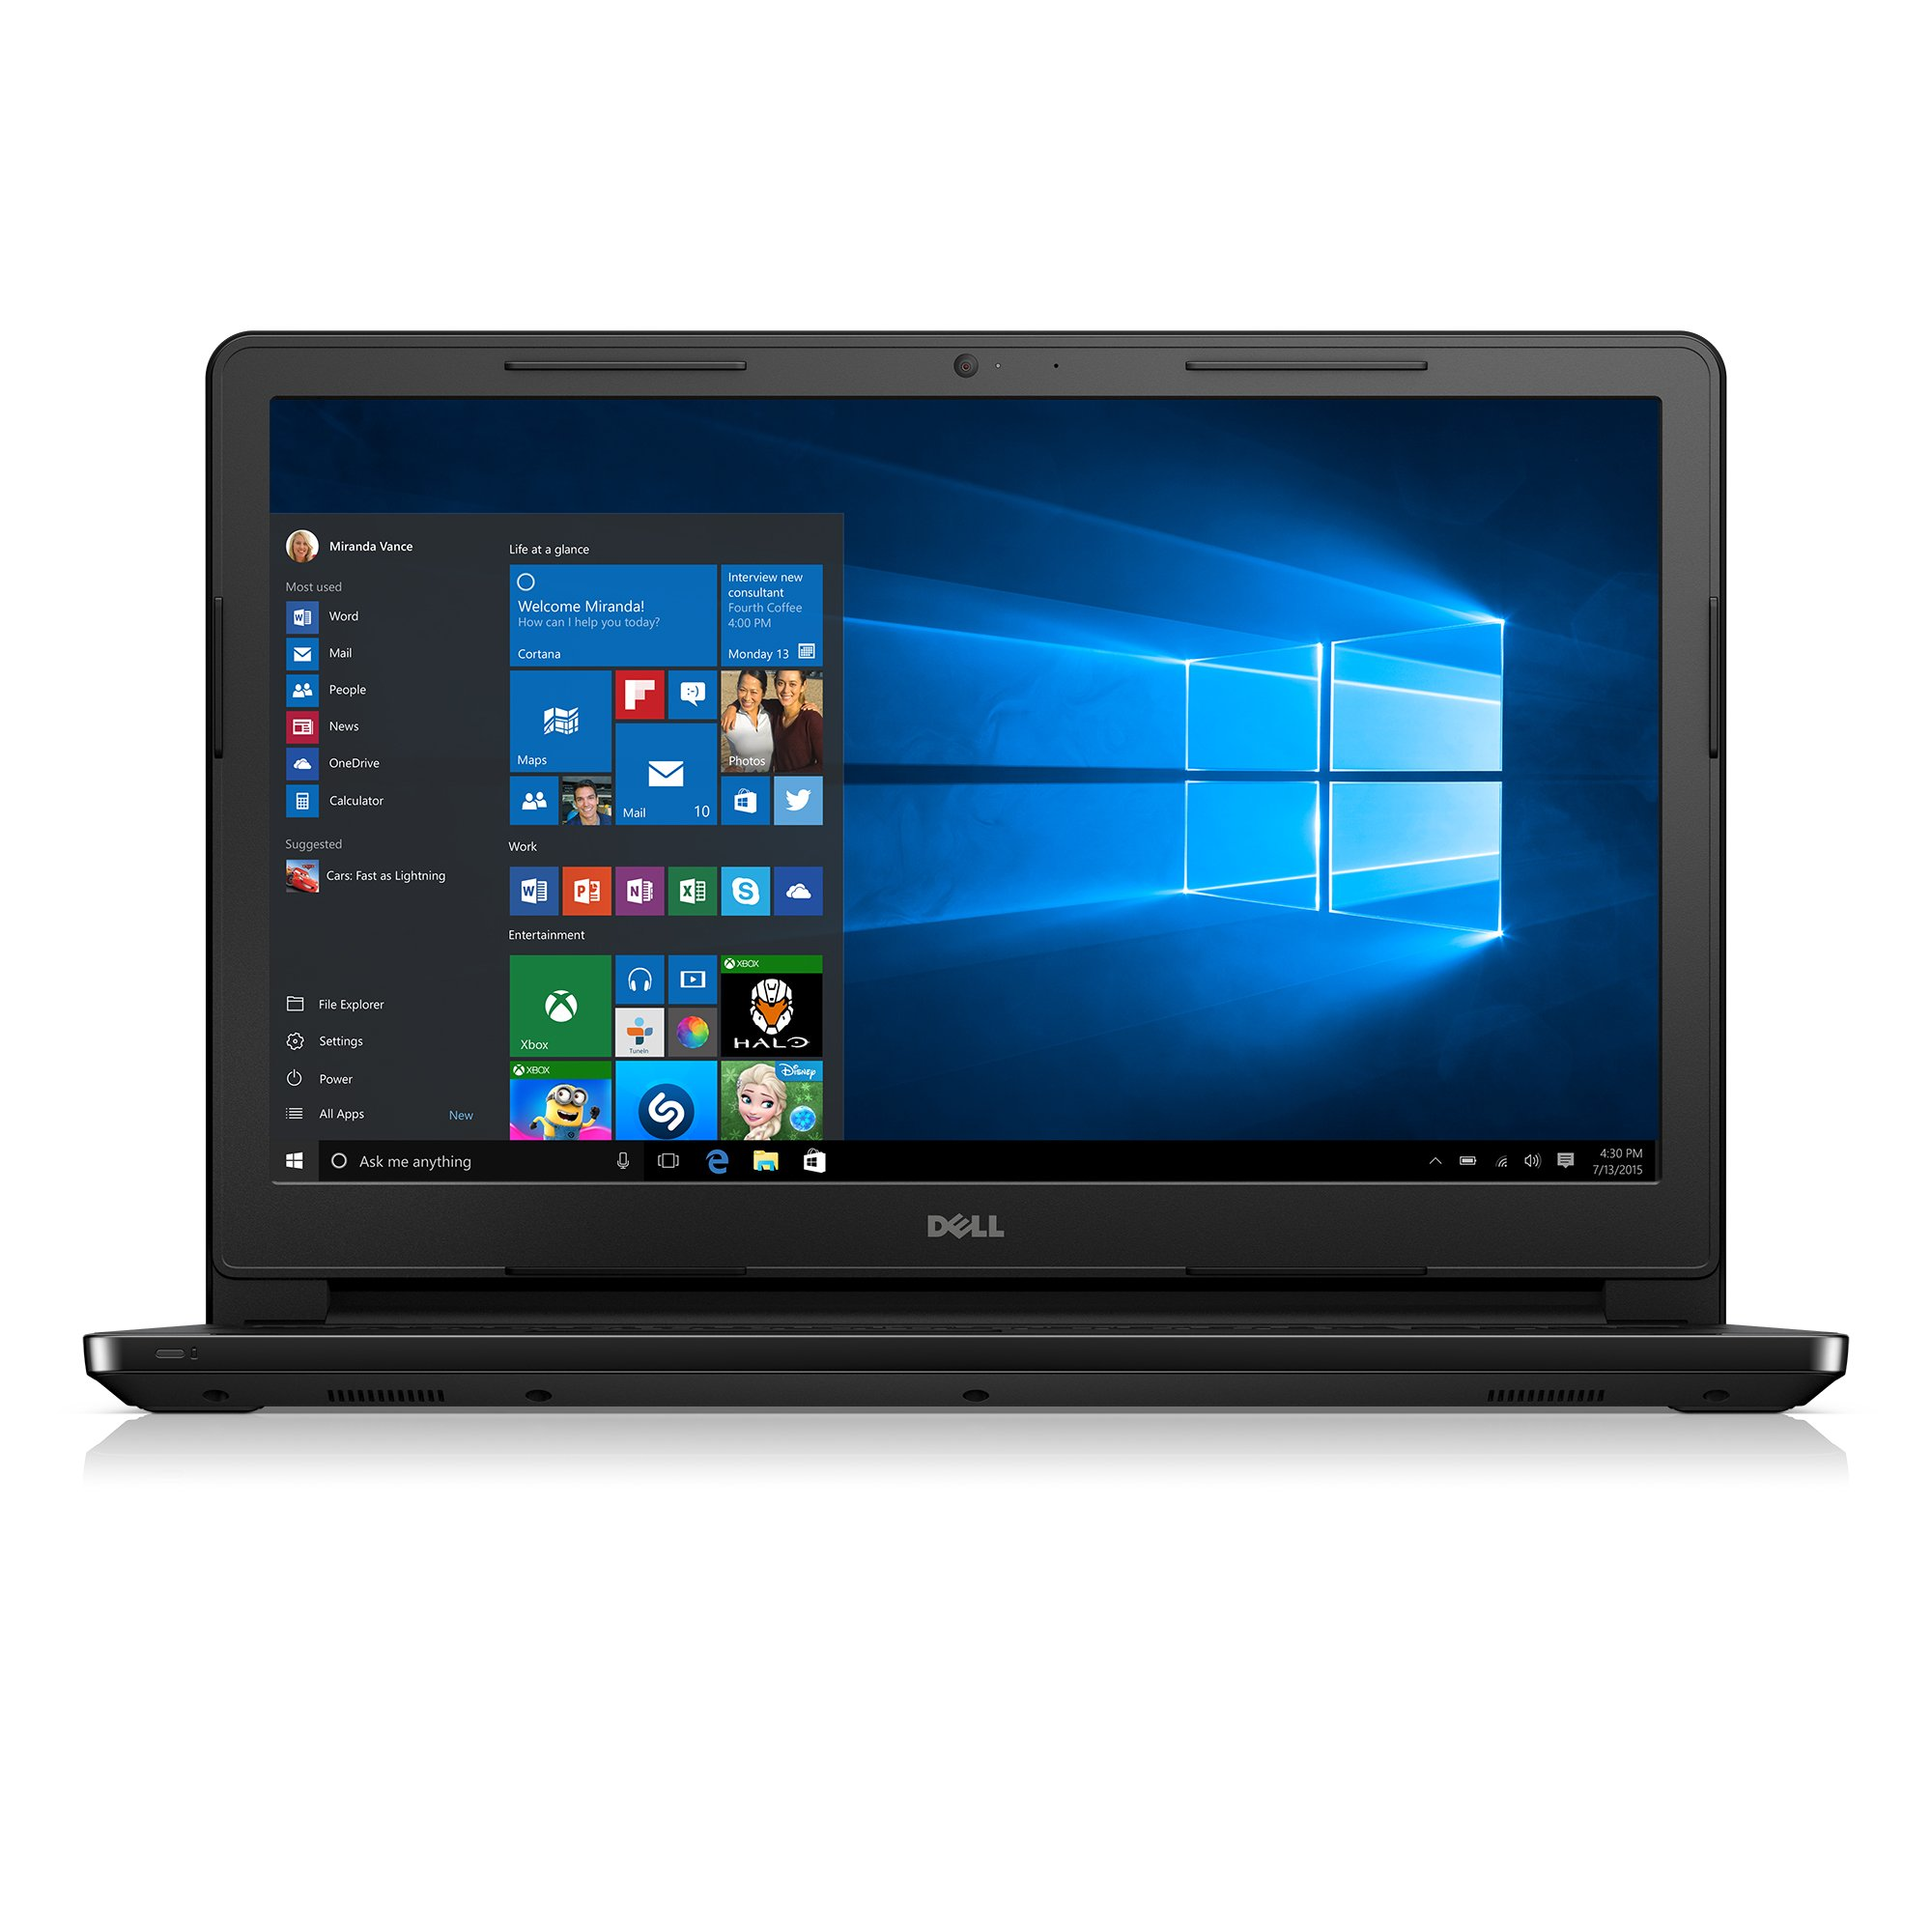 Dell Inspiron i3552-4042BLK 15.6 Inch Laptop (Intel Celeron, 4 GB RAM, 500 GB HDD, Black)